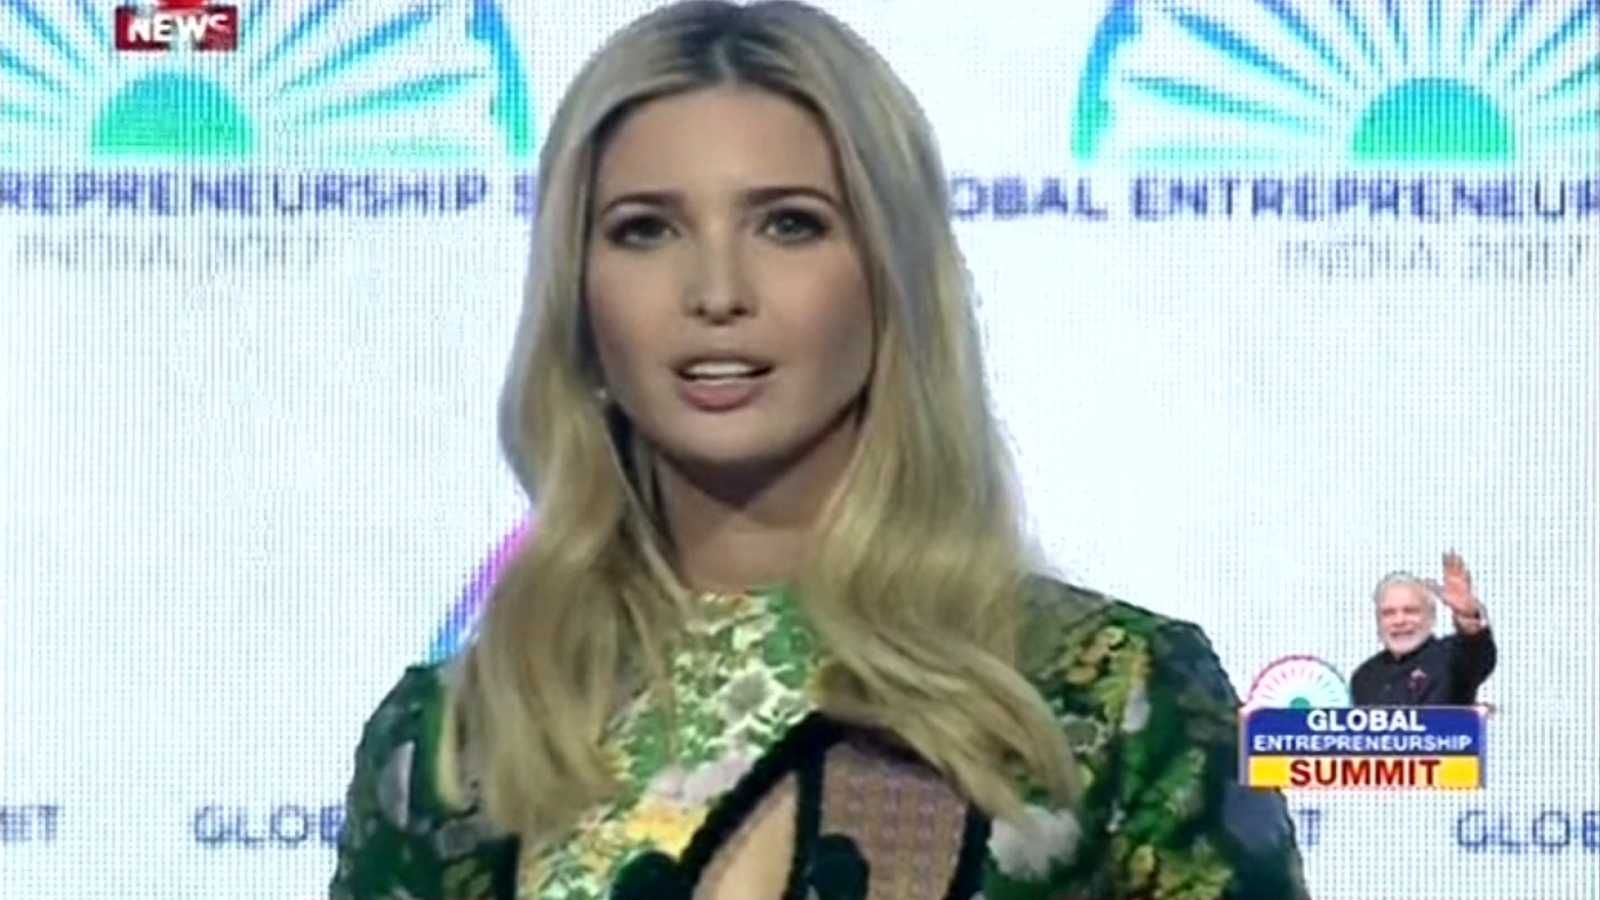 ivanka-trump-promotes-gender-equality-at-2017-global-entrepreneurship-summit-in-india